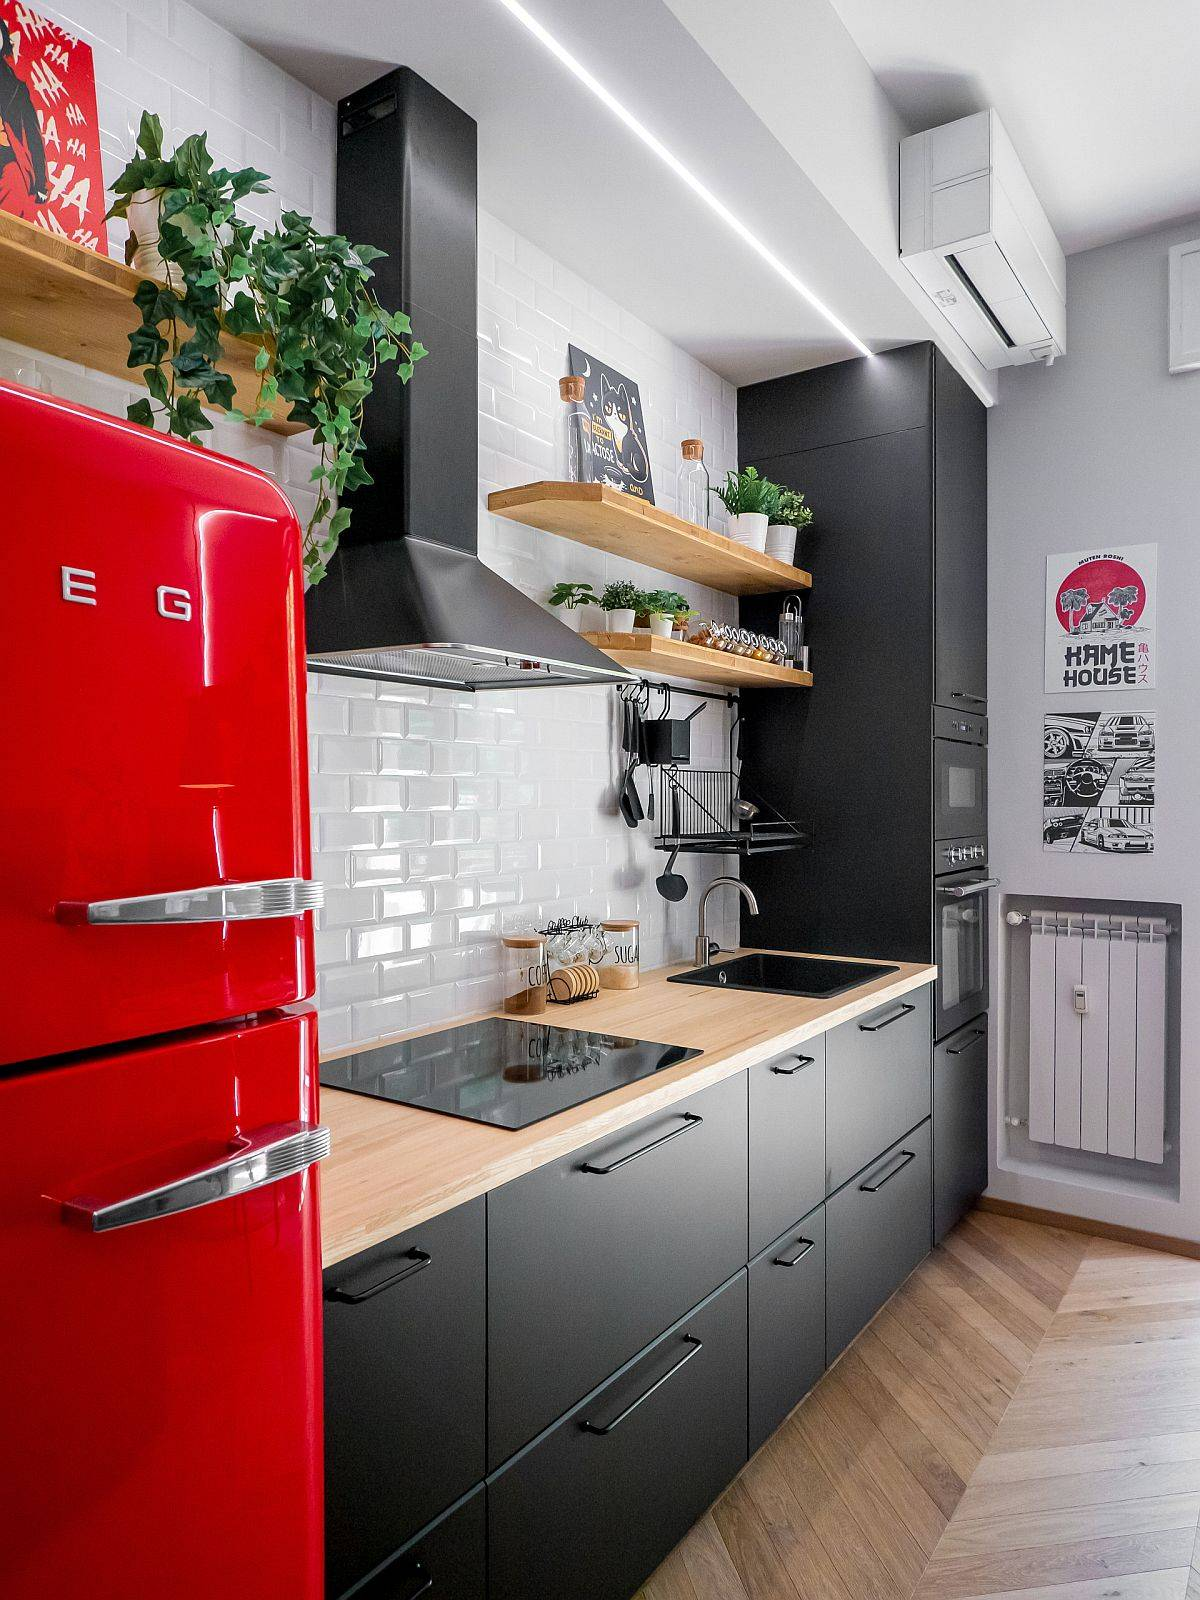 Stylish-modern-industrial-kitchen-in-white-wood-and-steely-gray-with-a-bright-red-vintage-refrigerator-65544